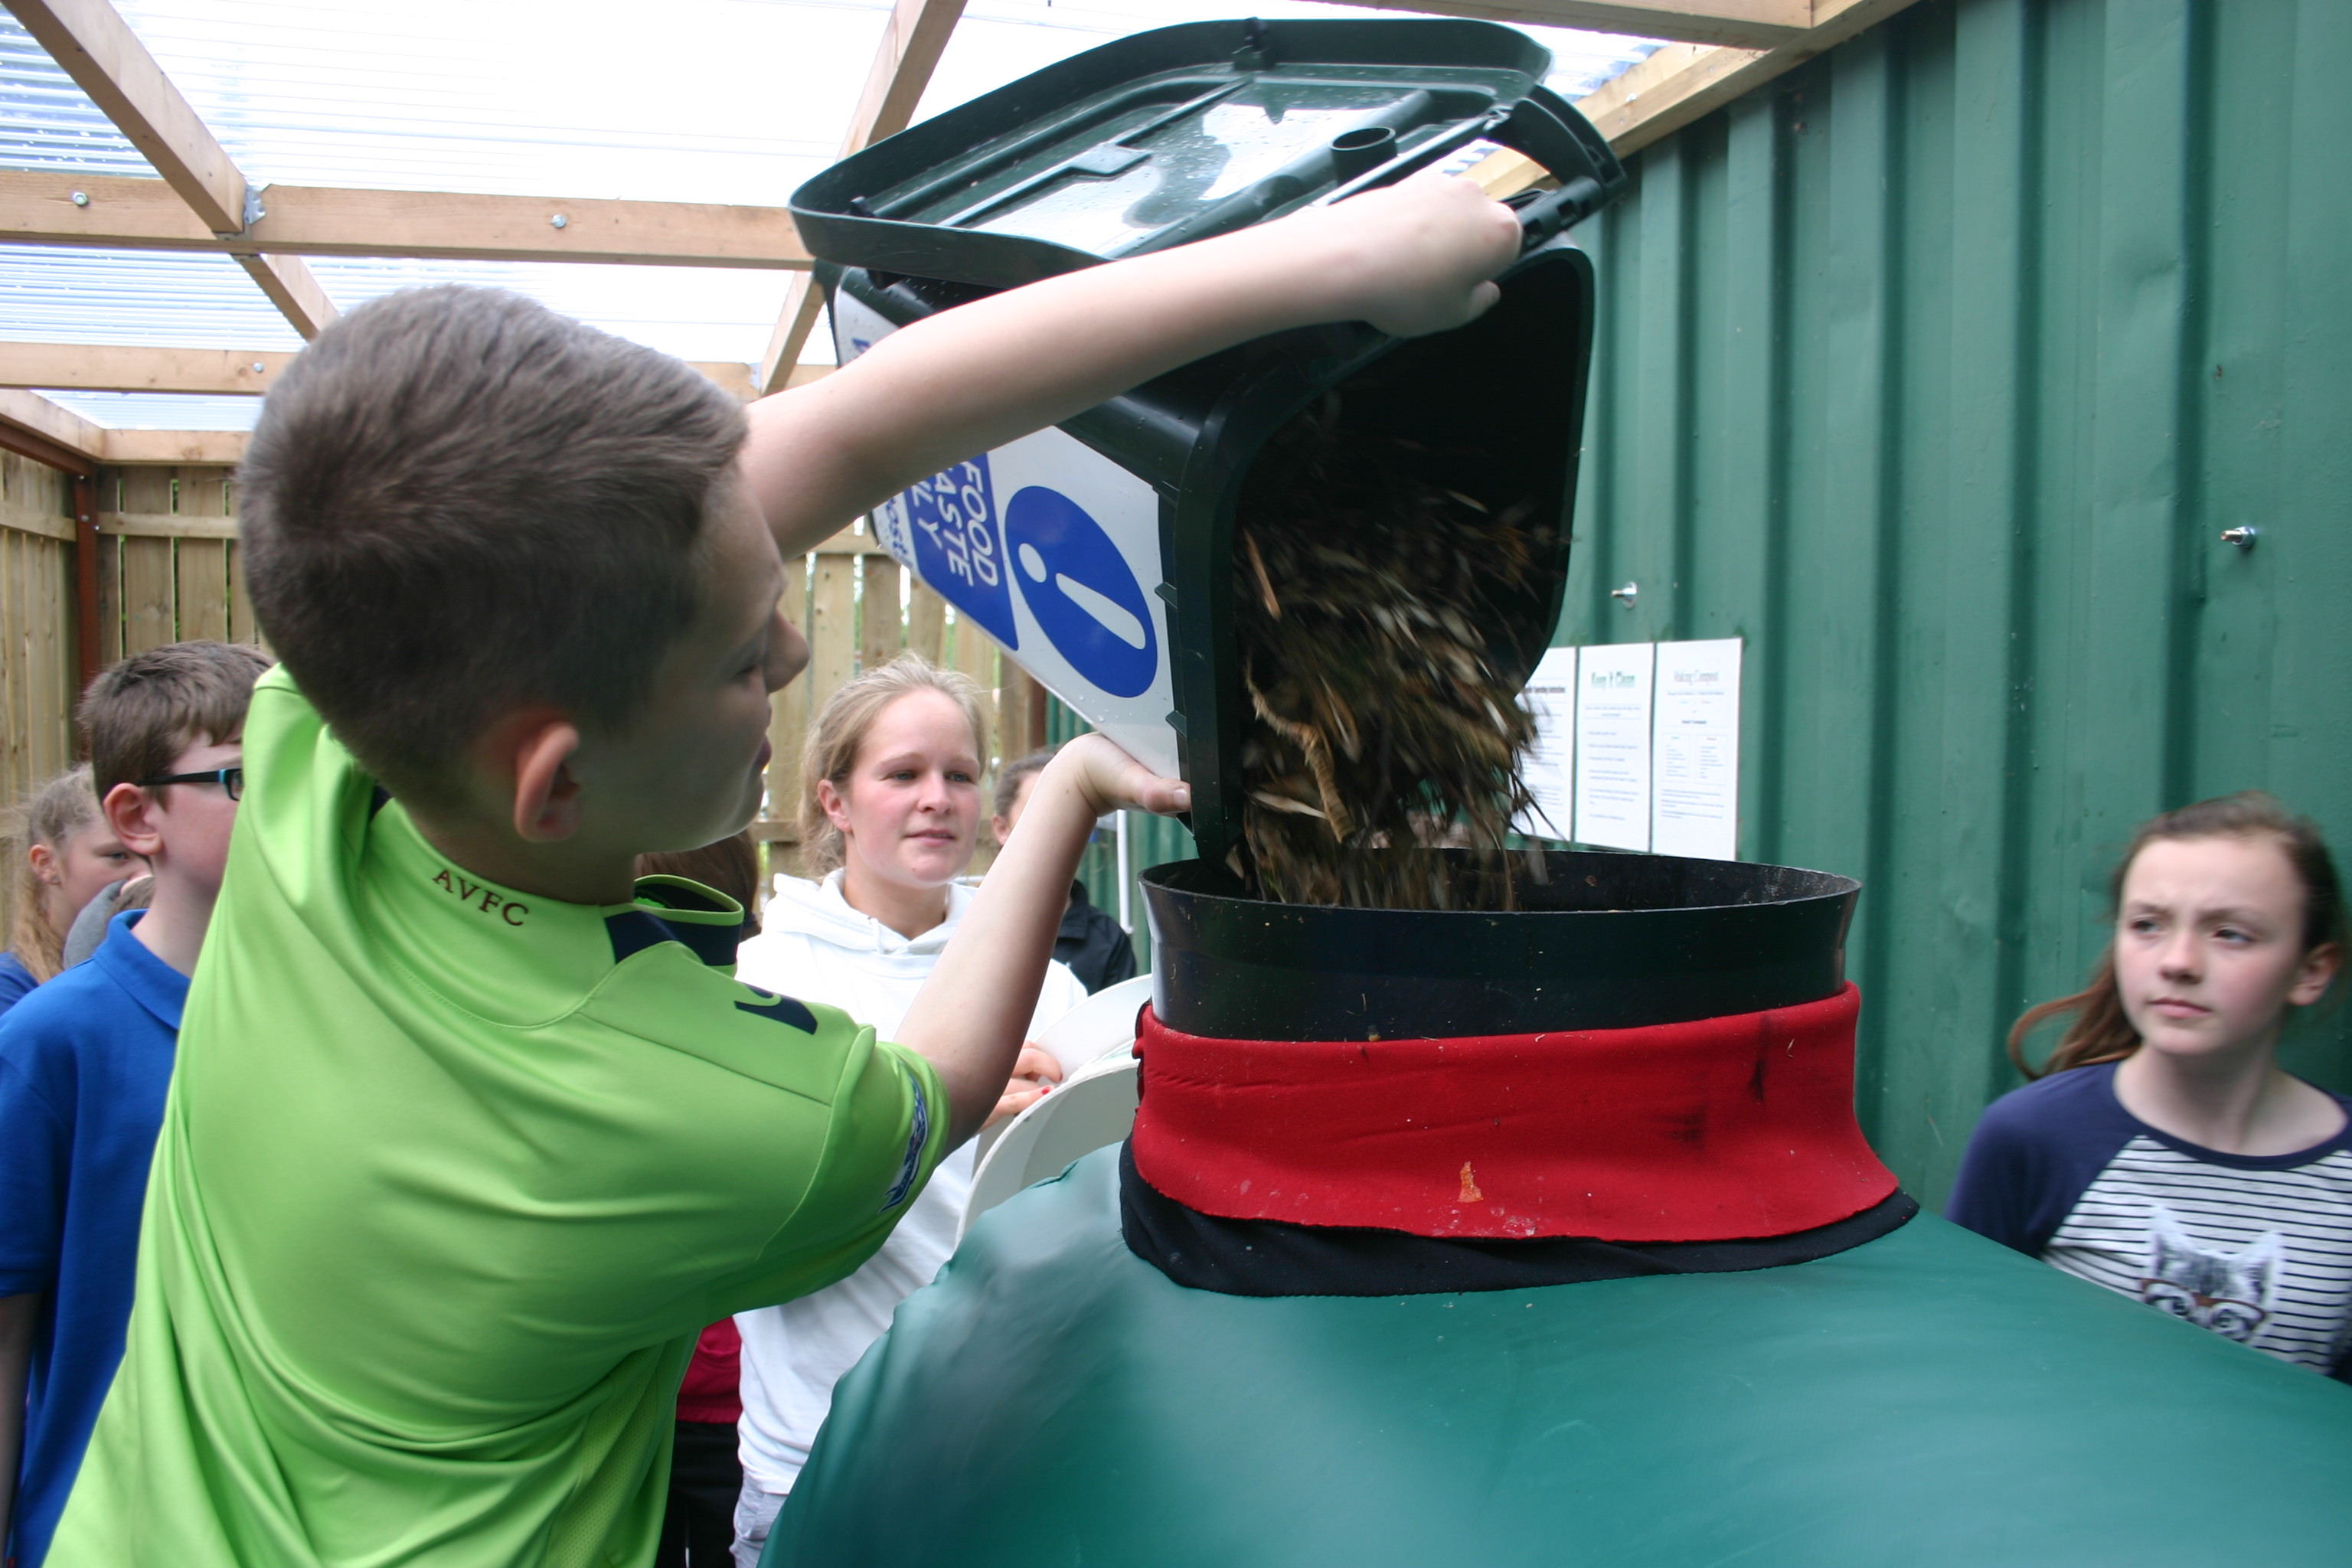 loading the food waste composter